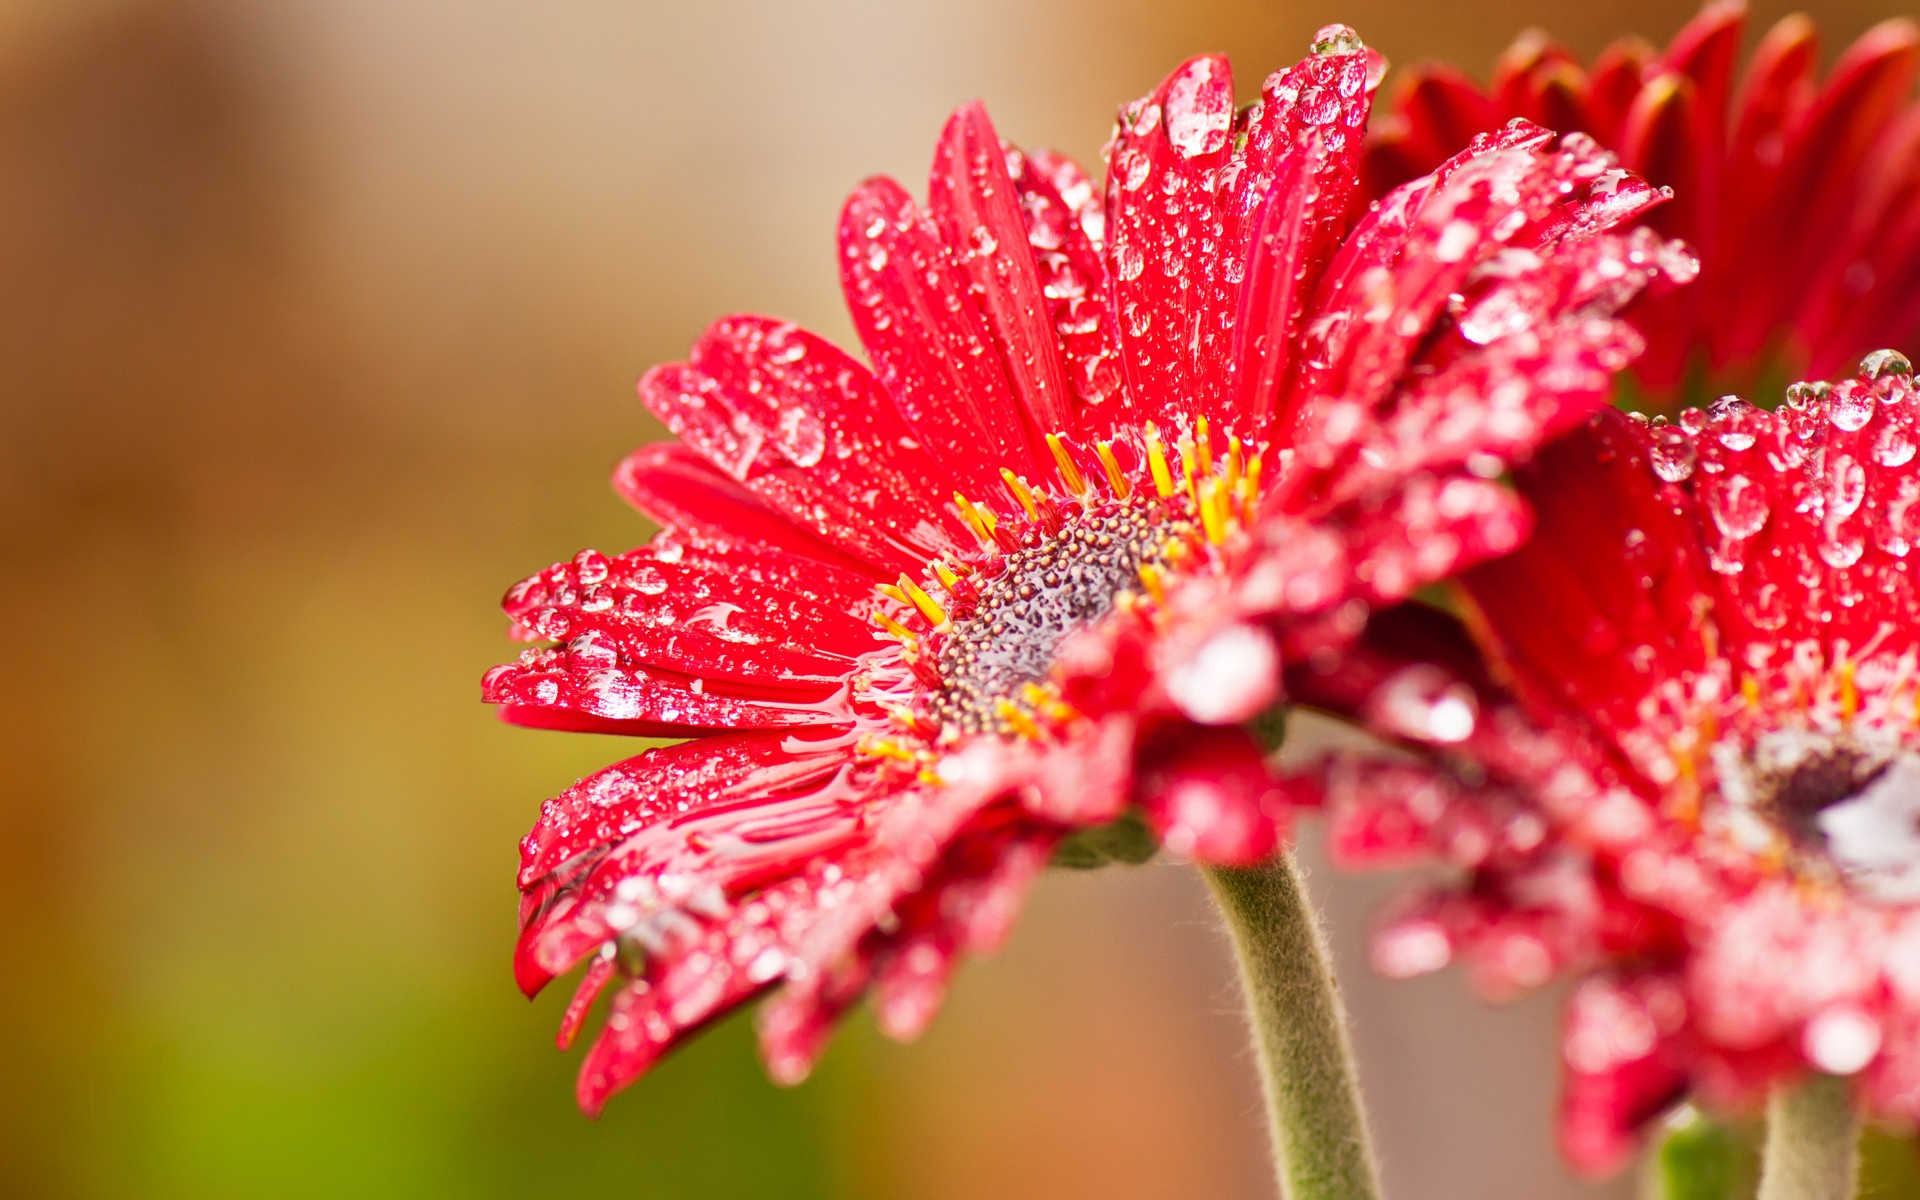 Wallpaper red gerbera flowers after rain 1920x1200 hd picture image download this wallpaper altavistaventures Image collections